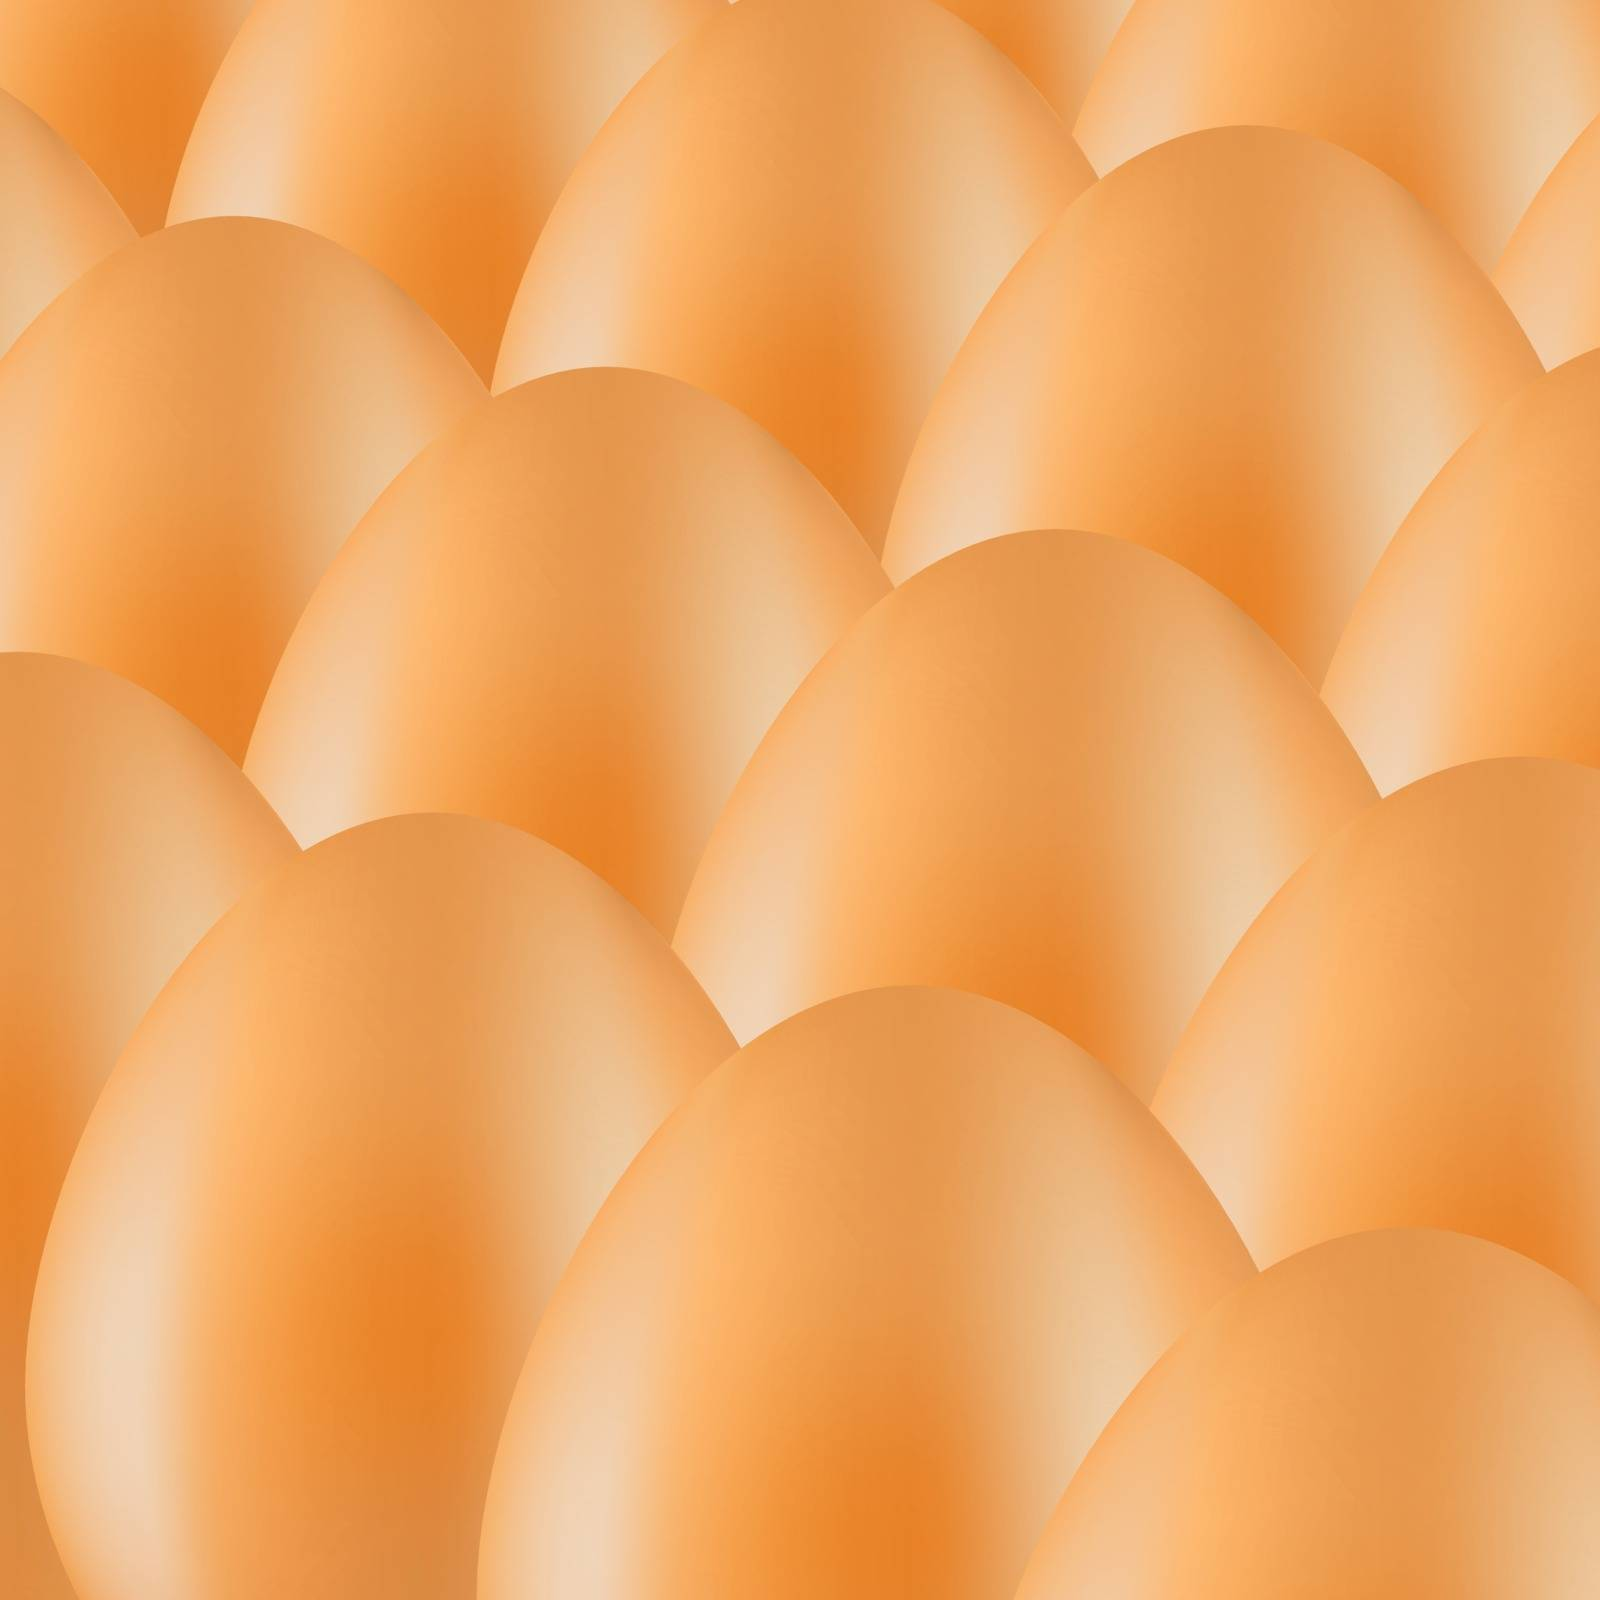 Set of Brown Organic Eggs. Eggs Background.